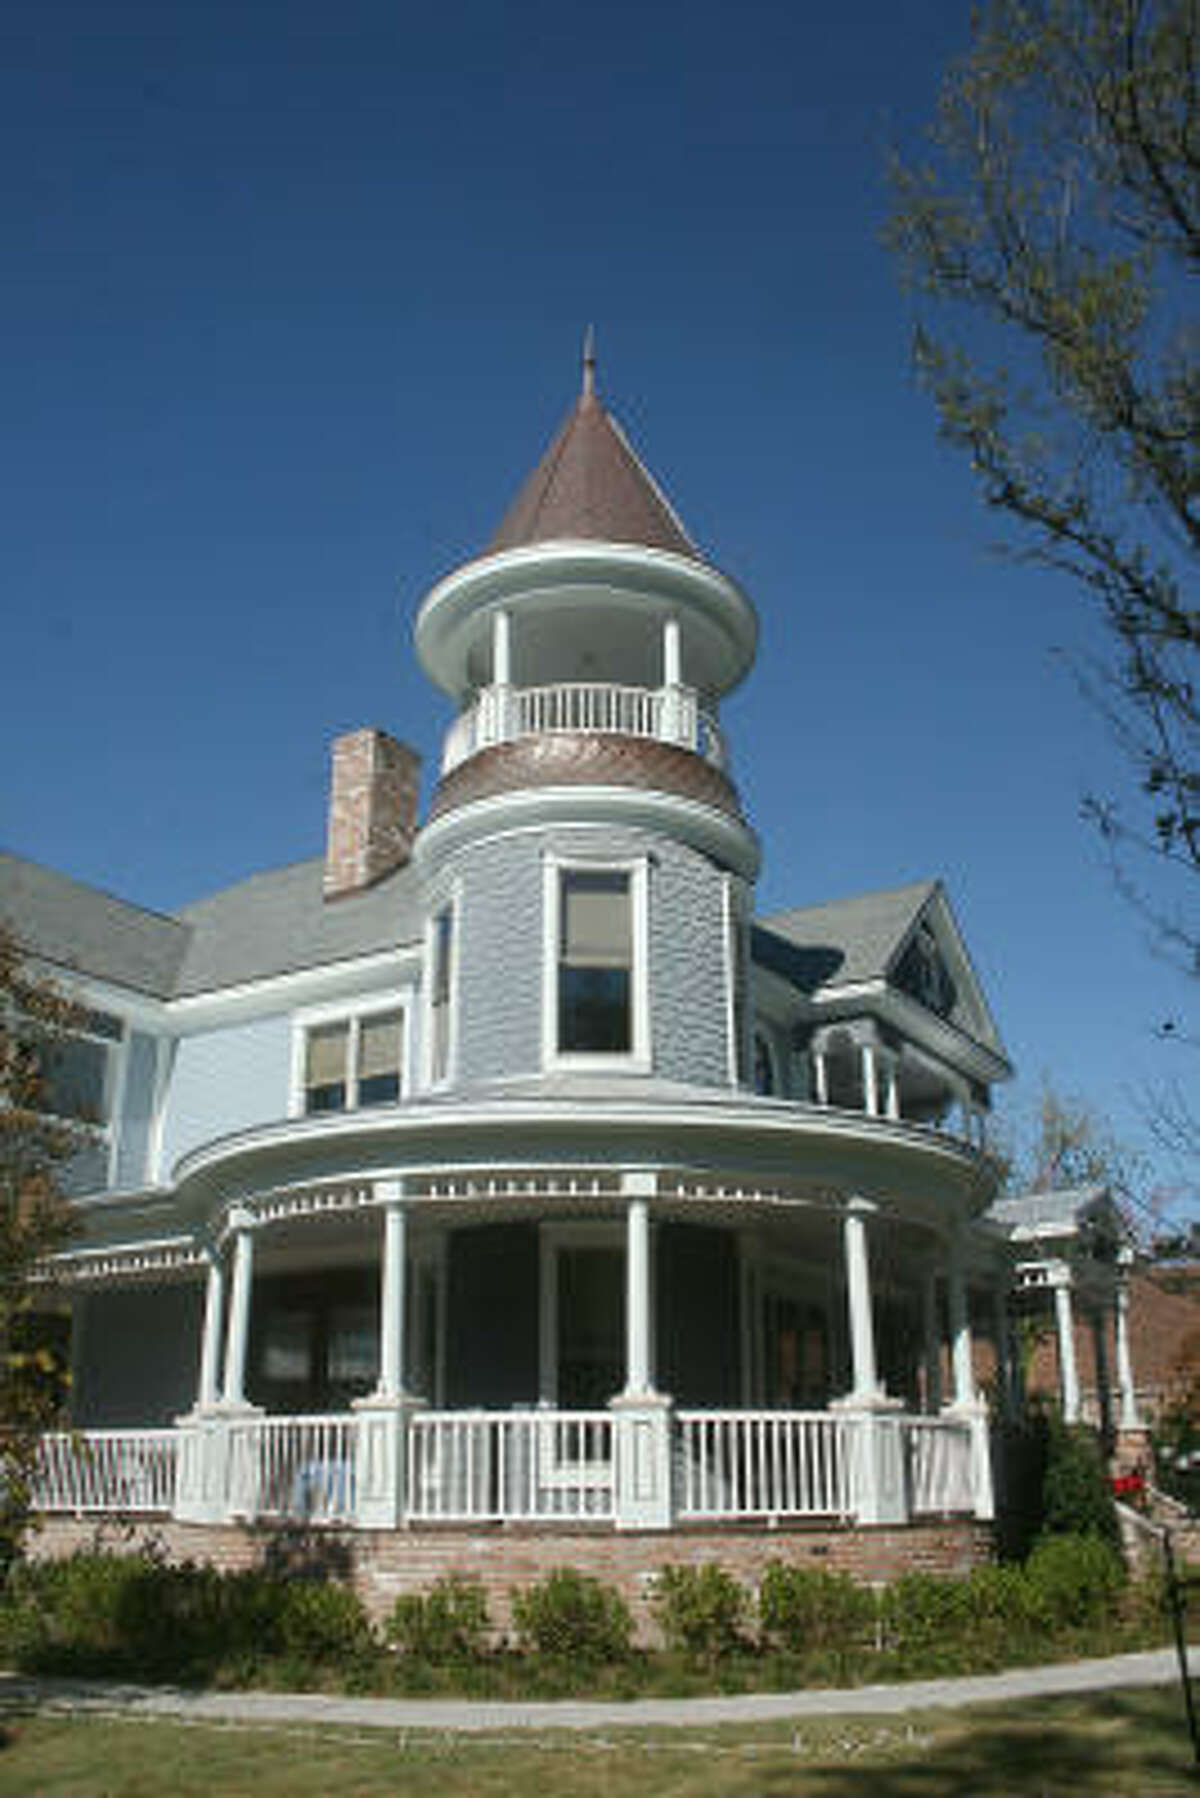 The replica Victorian house at 1135 Heights Boulevard was part of the Heights holiday home tour in 2008.